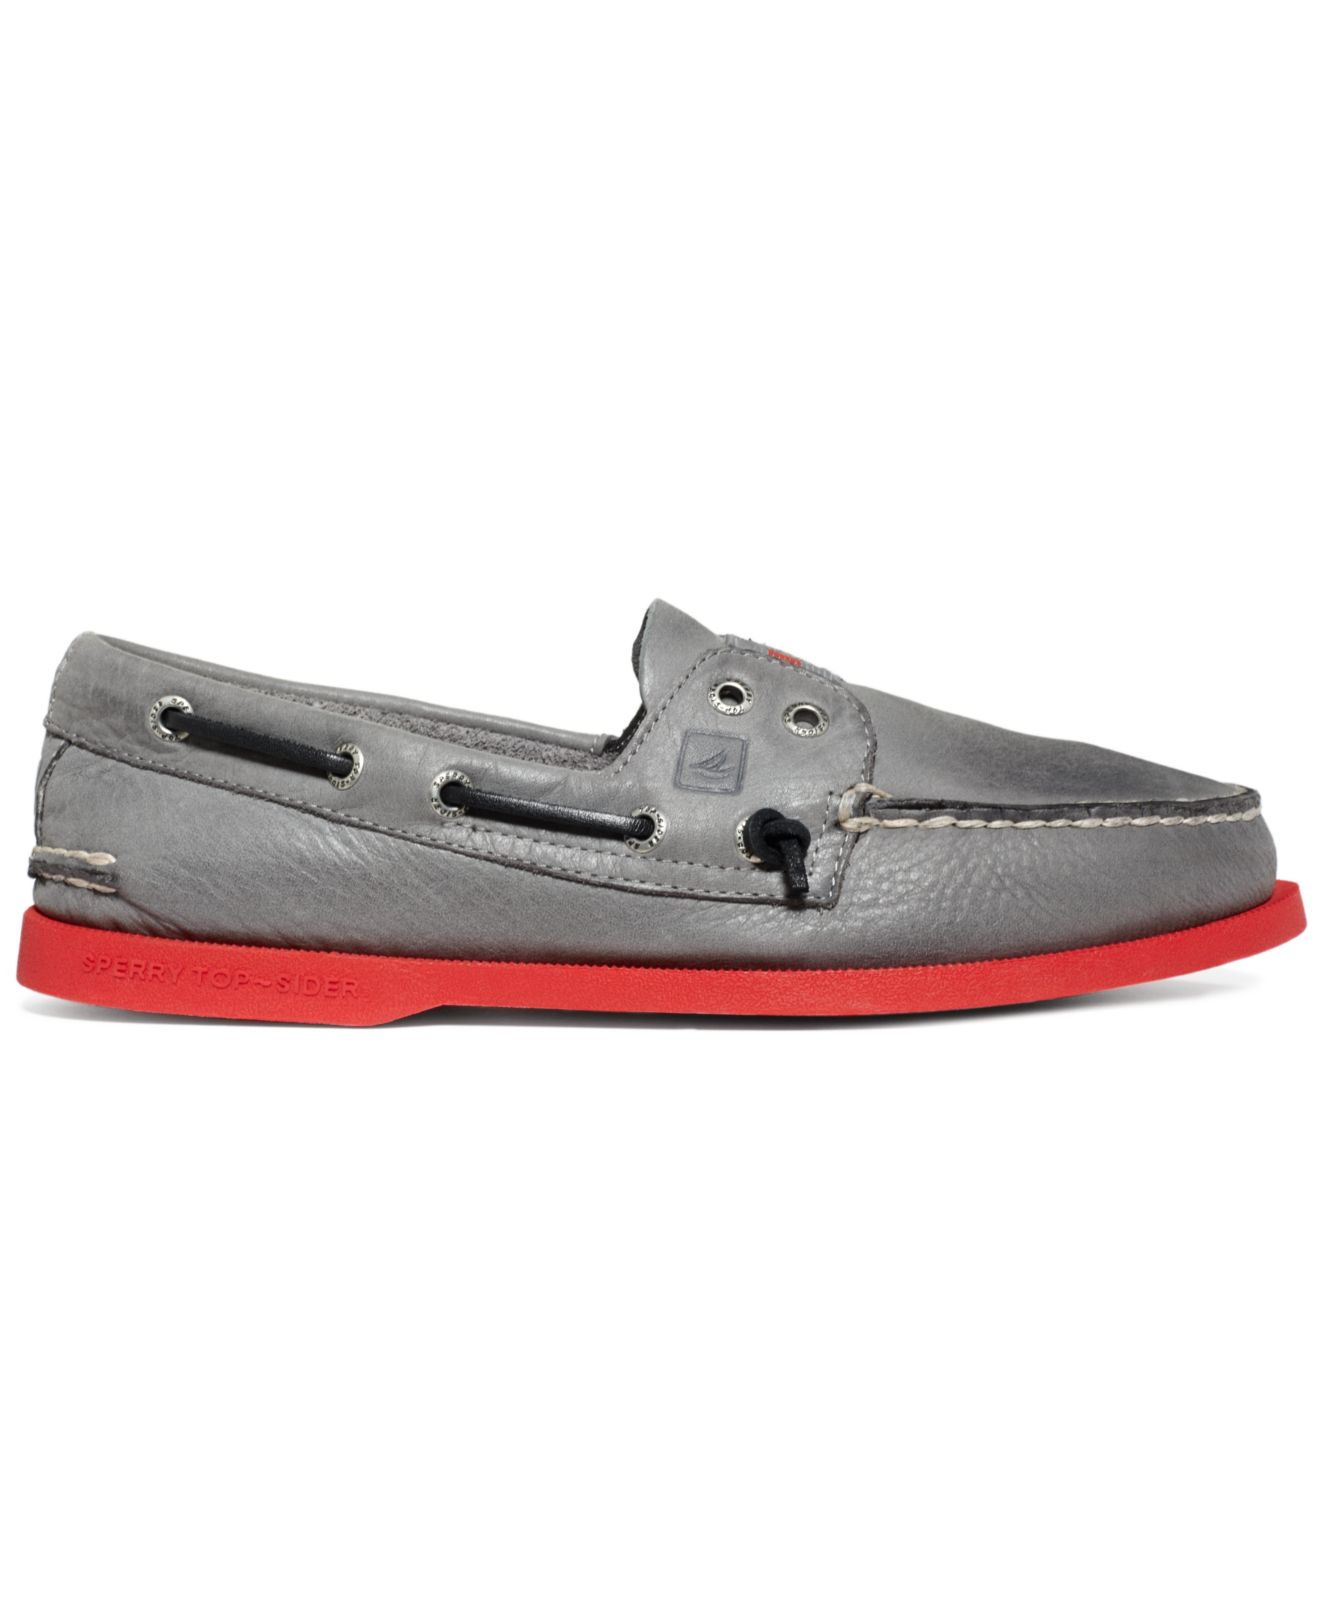 Sperry top-sider Authentic Original A/O Gore Colored Sole Boat ...